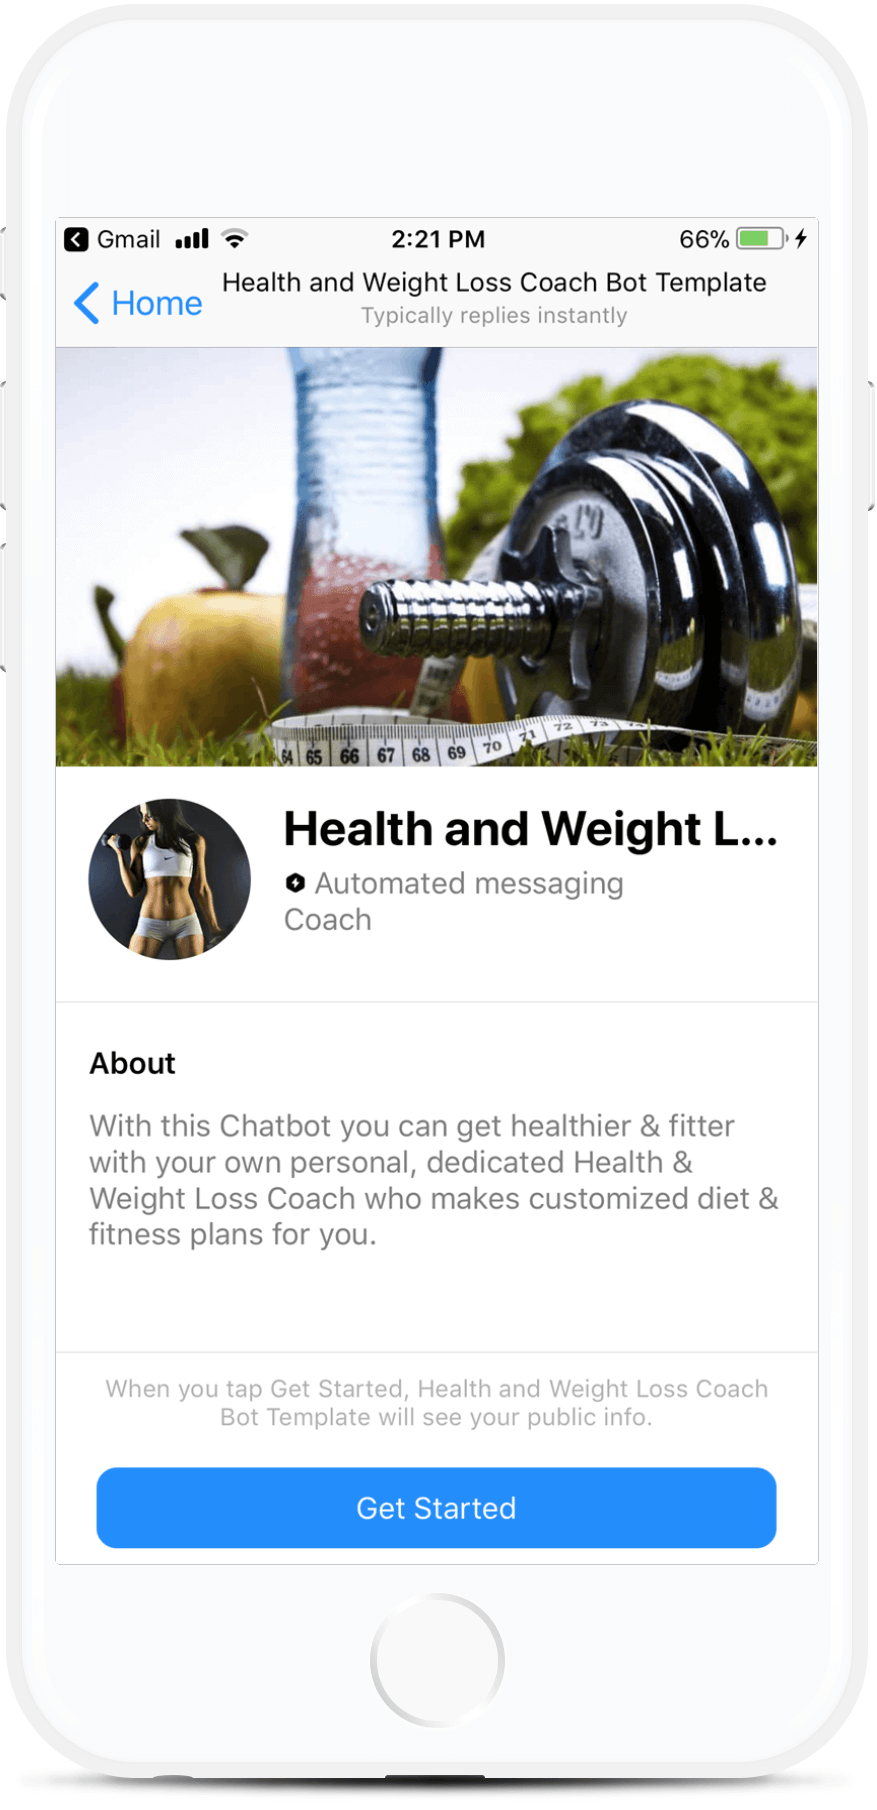 Health and Weight Loss Coach Messenger bot screenshot